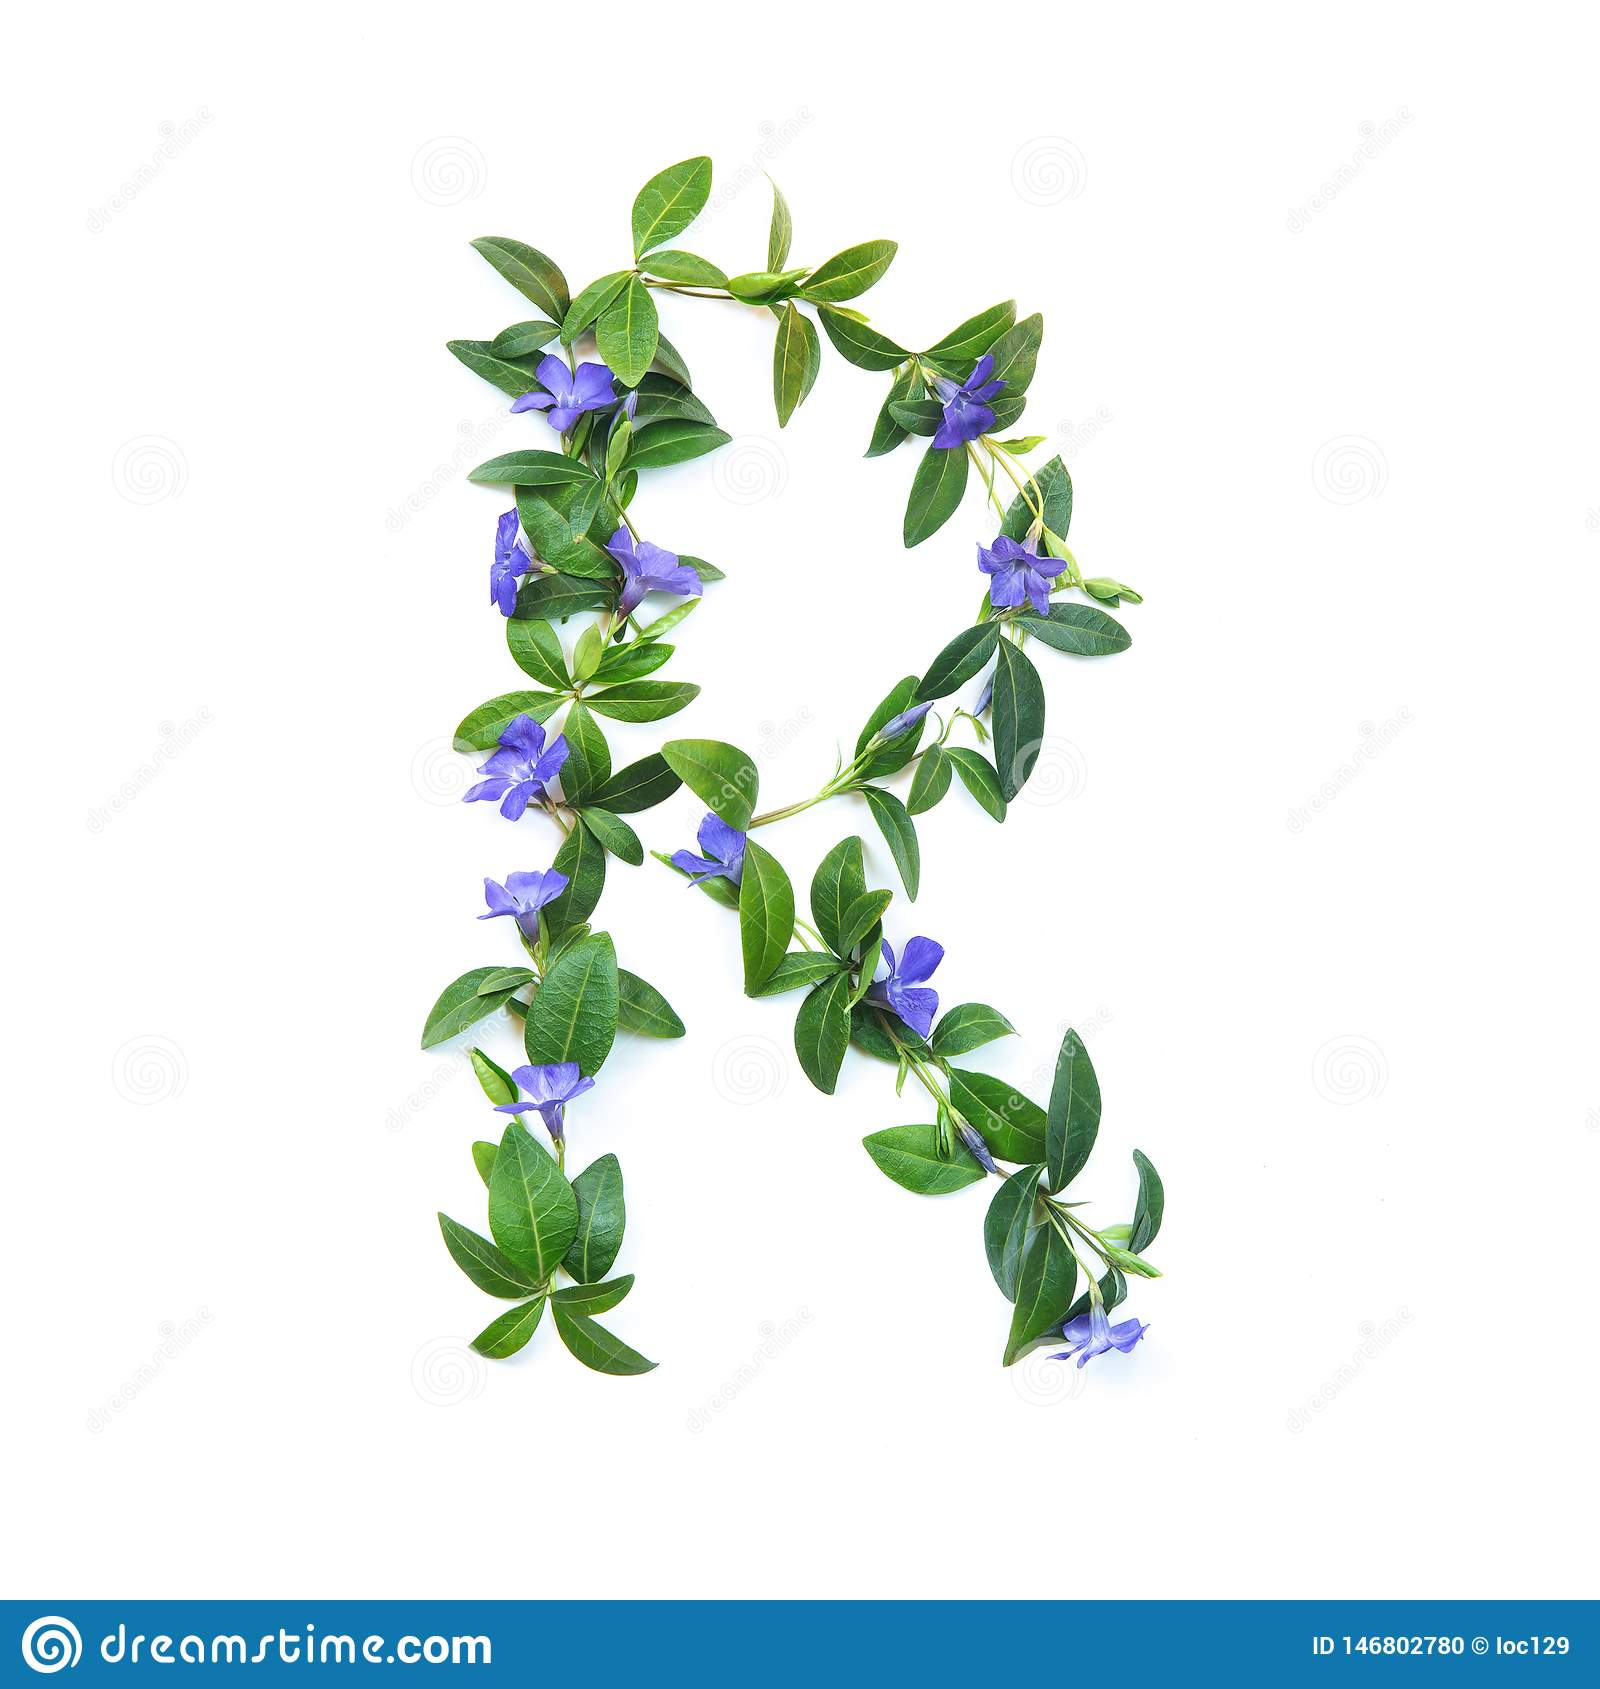 R, letter of the alphabet of flowers isolated on white background. The letter of flowers and leaves of periwinkle. Green and